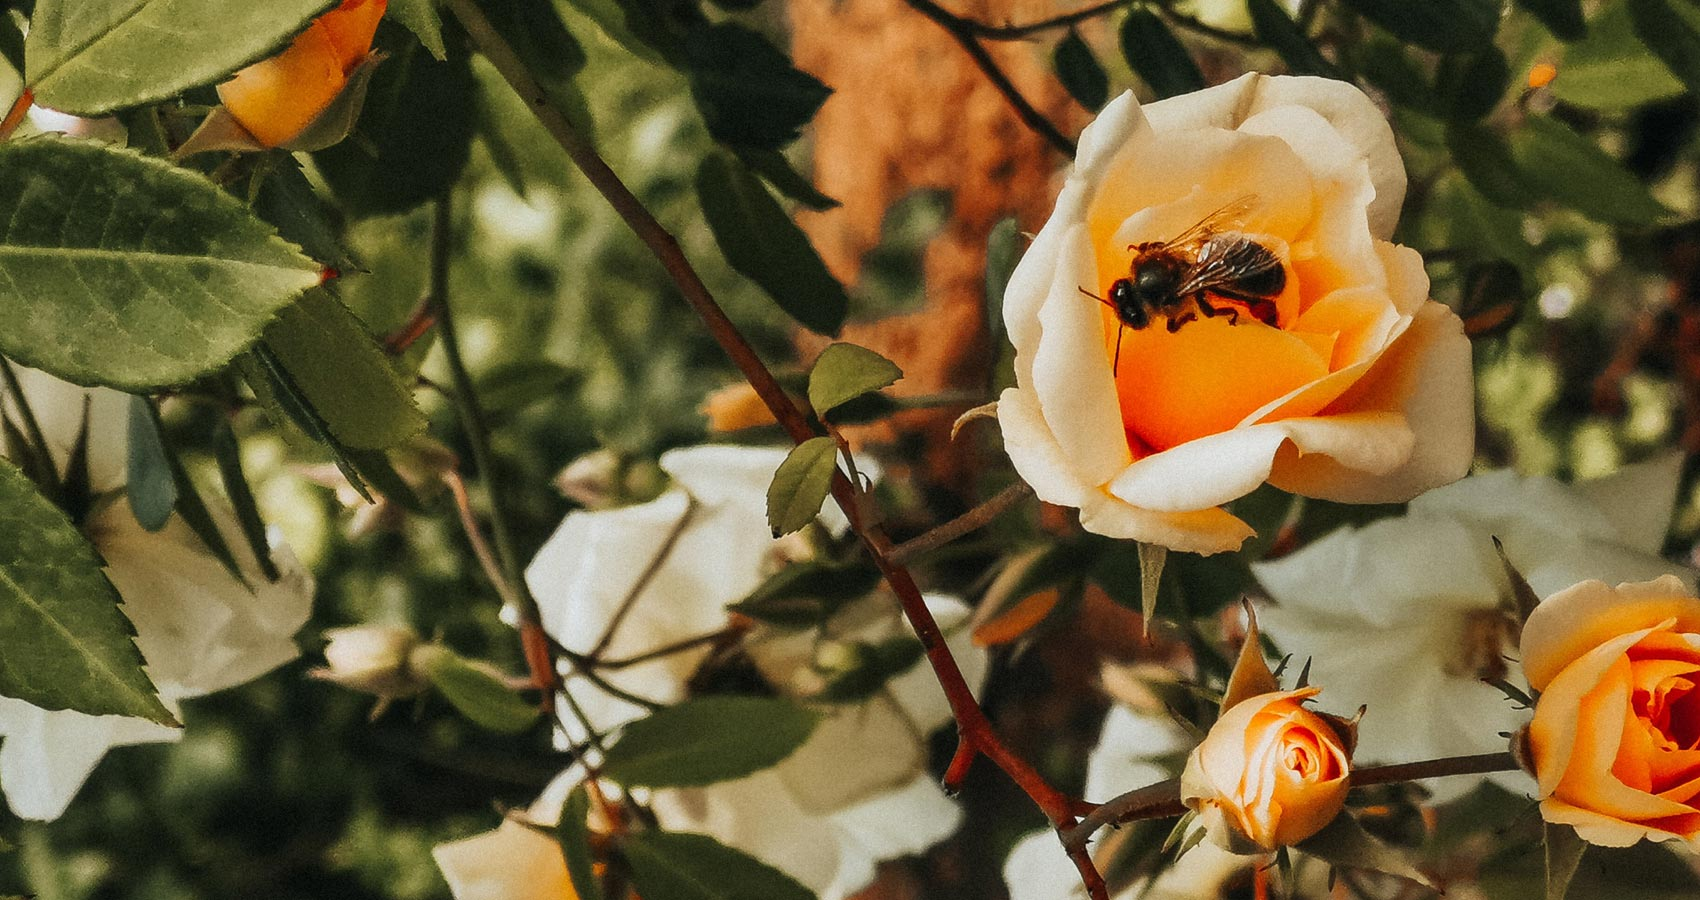 Bee In A Garden Of Roses, a poem by Thaddeus Hutyra at Spillwords.com